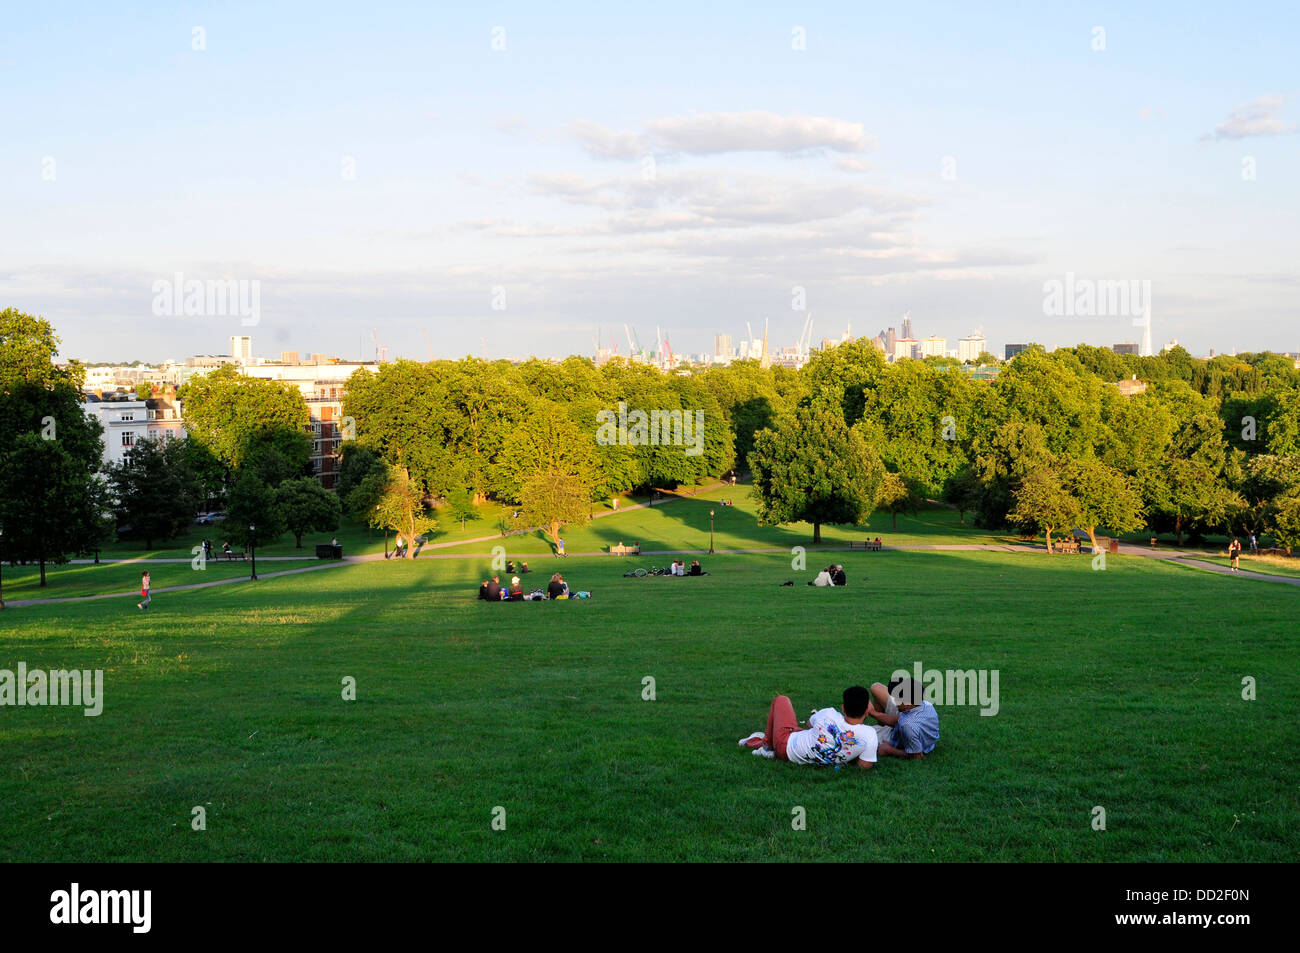 People relax in Primrose Hill during the hot weather, London, UK - Stock Image